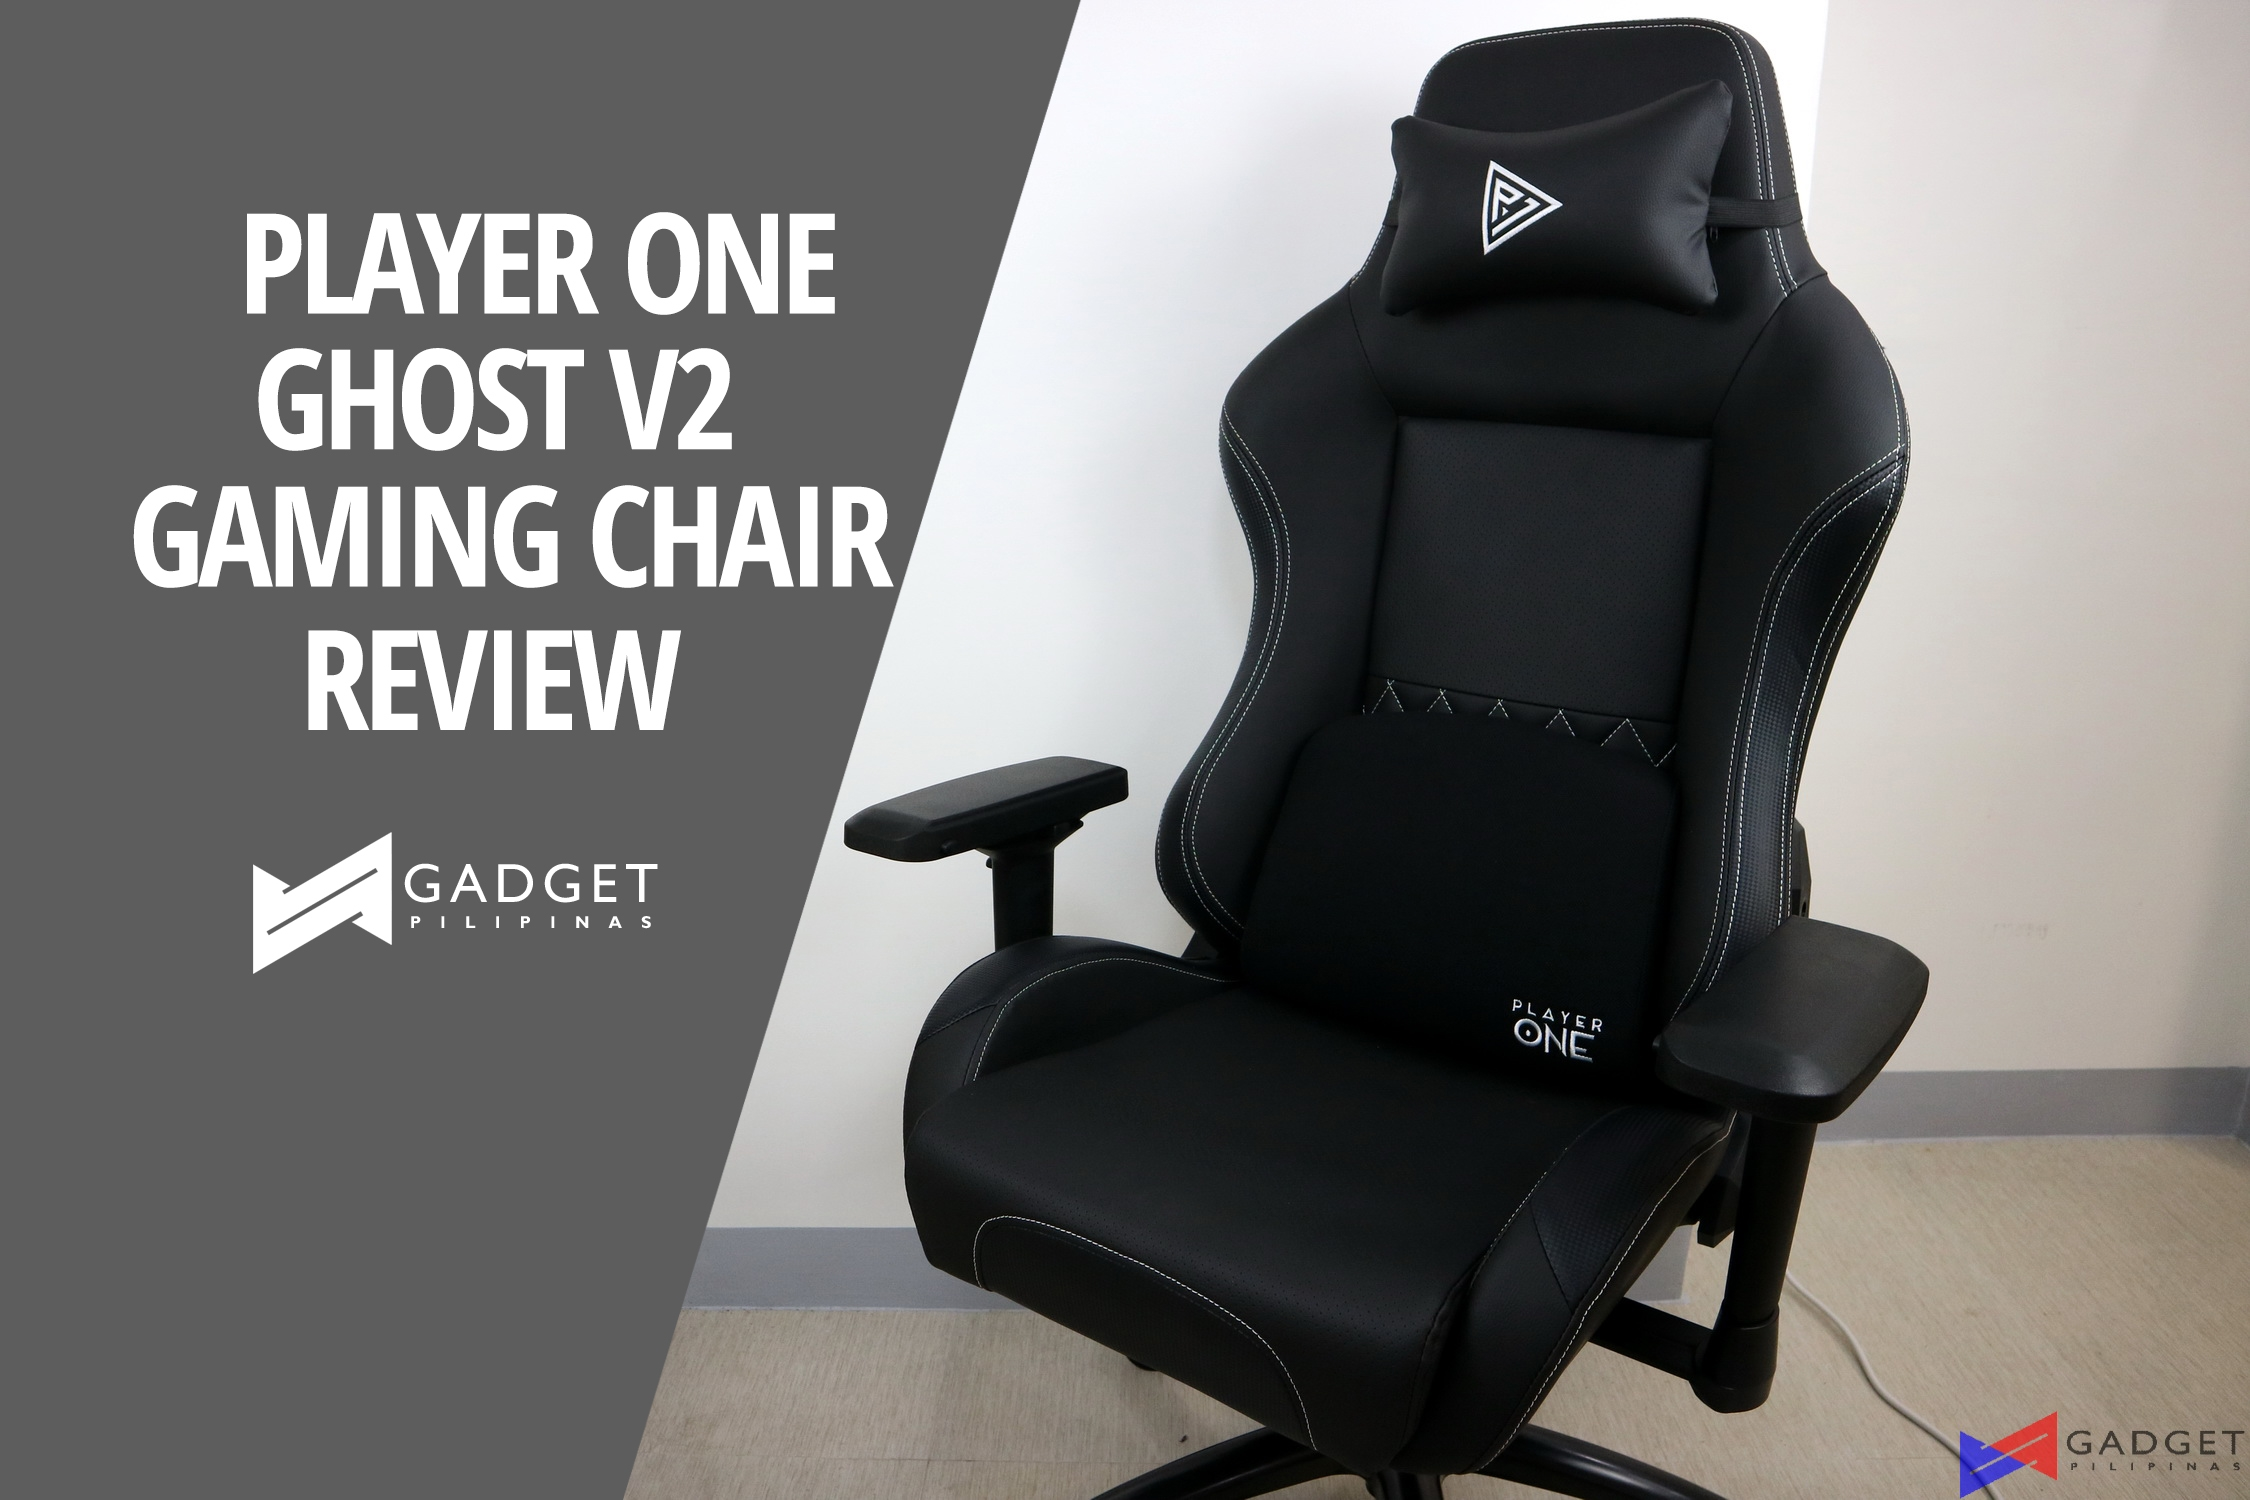 Player One Ghost v2 Gaming Chair Review - Player One Ghost v2 Review